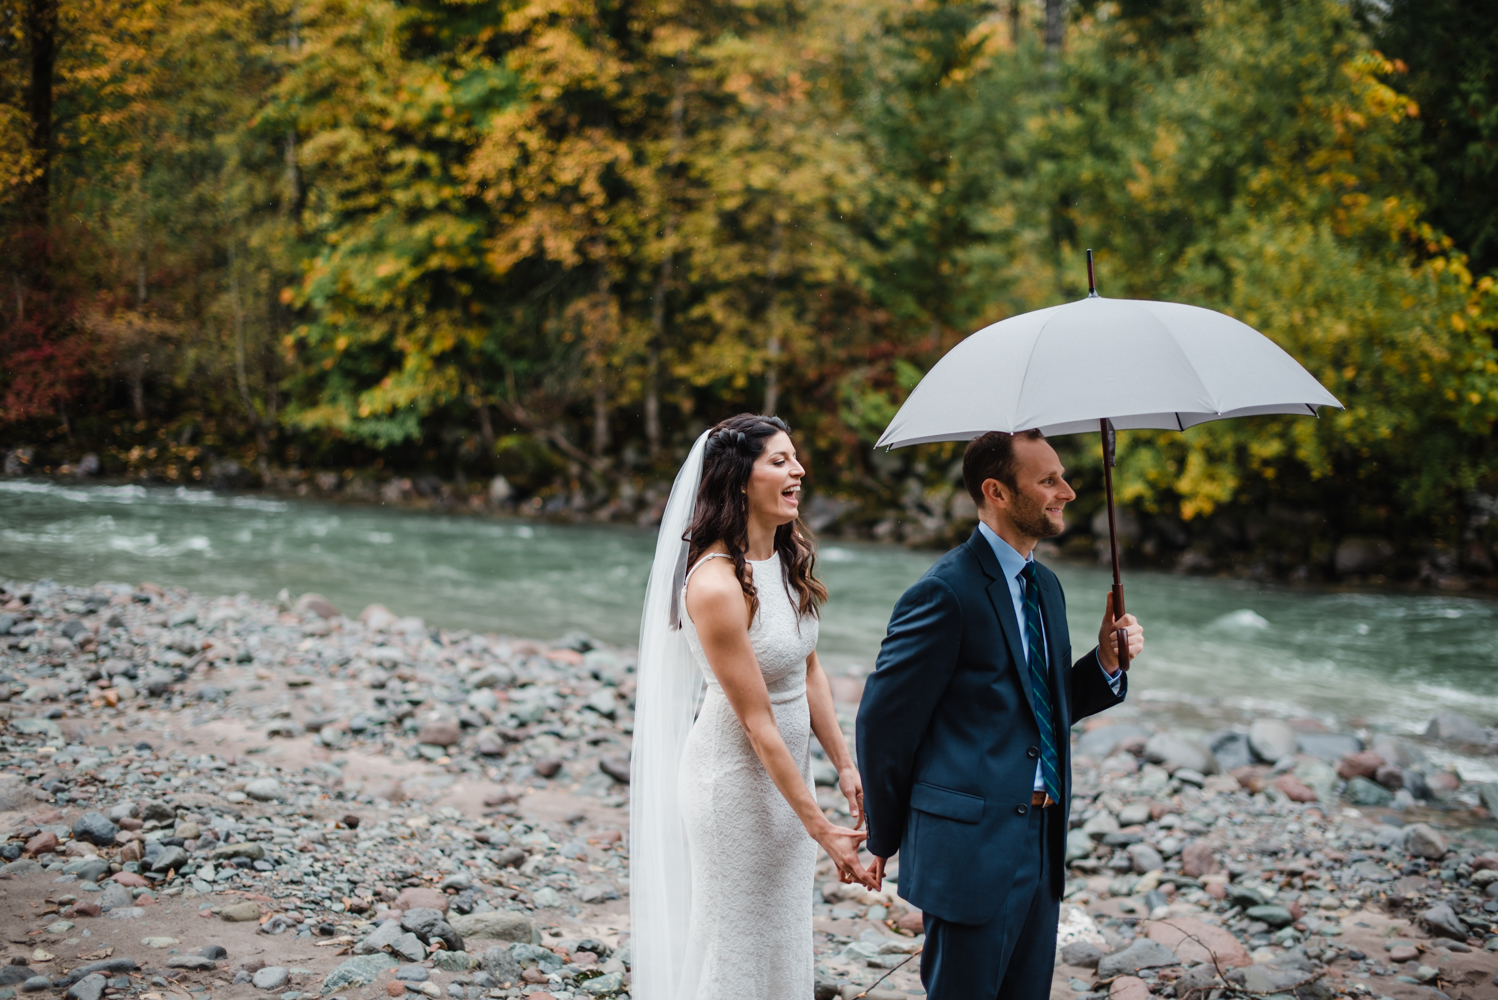 Squamish Wedding Photographer22.jpg